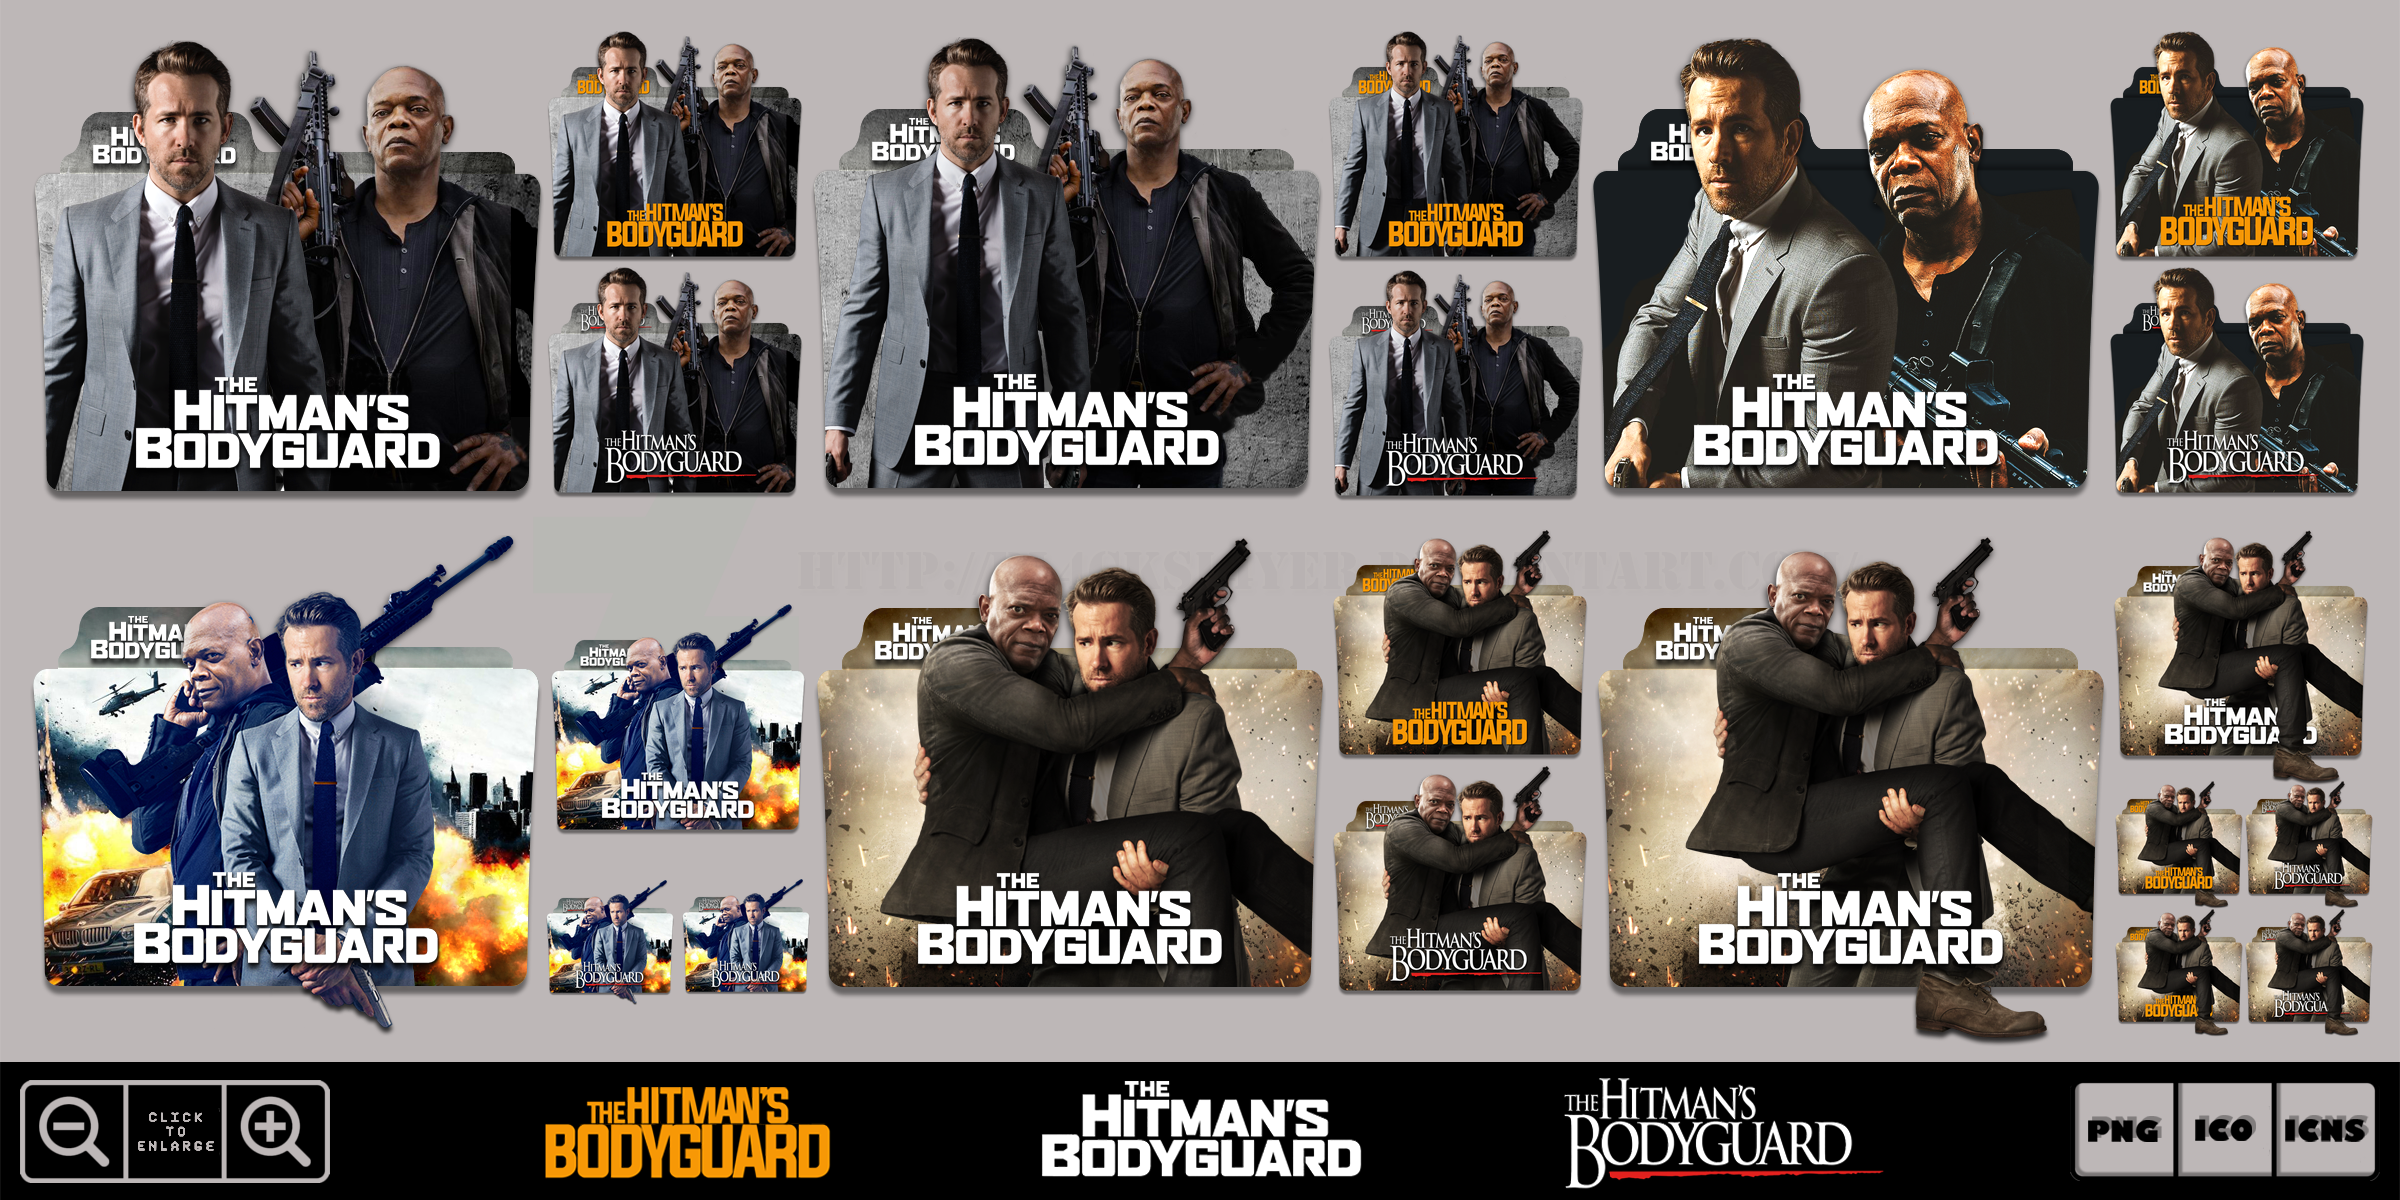 The Hitman S Bodyguard 2017 Folder Icon Pack By Bl4cksl4yer On Deviantart